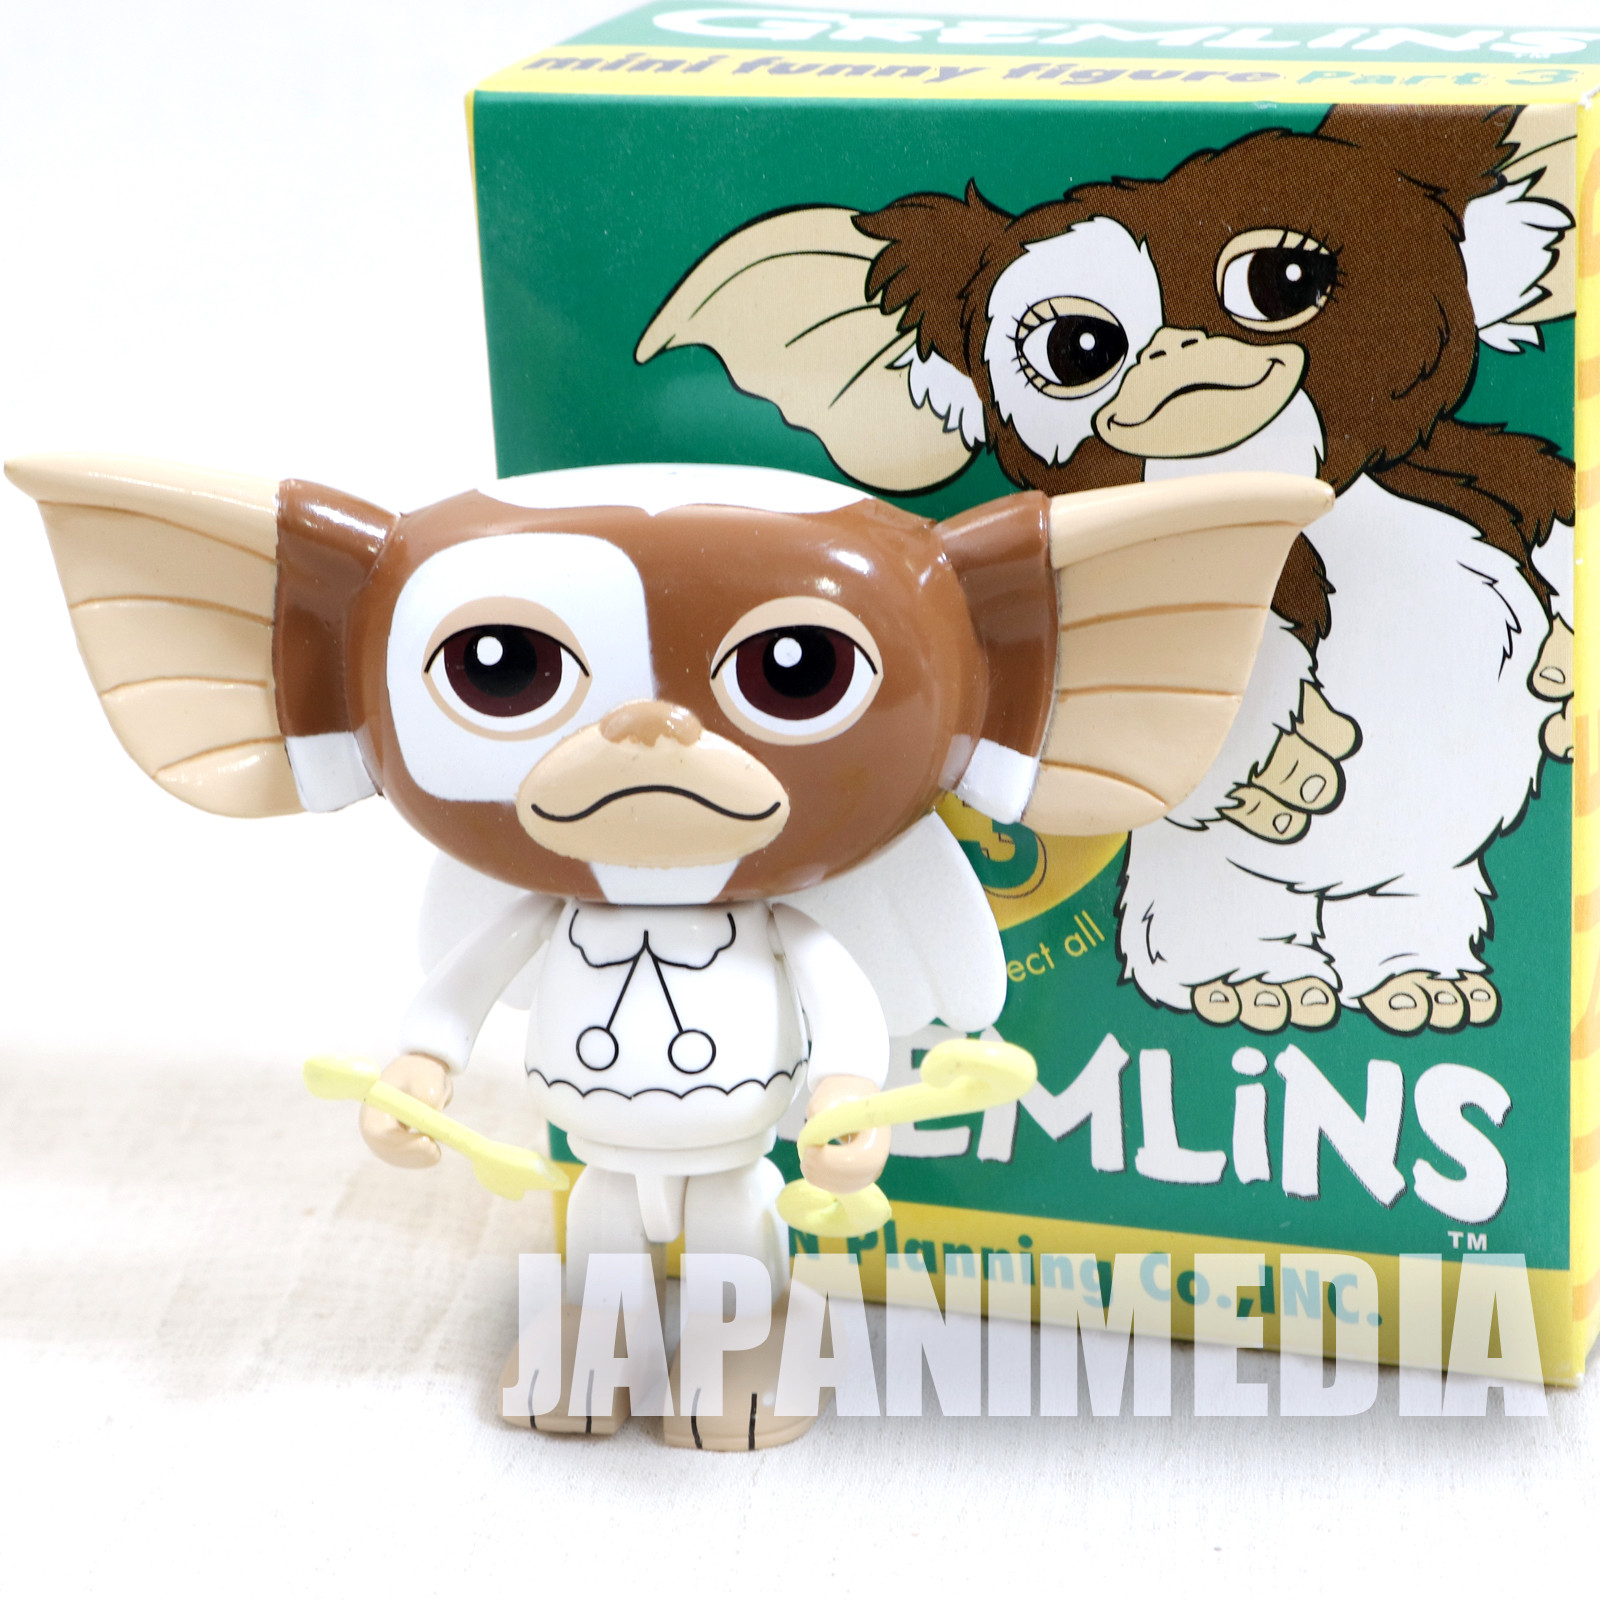 Gremlins 2 Jun Planning Mini Funny Figure Part.3 Gizmo Secret Angel Ver. JAPAN